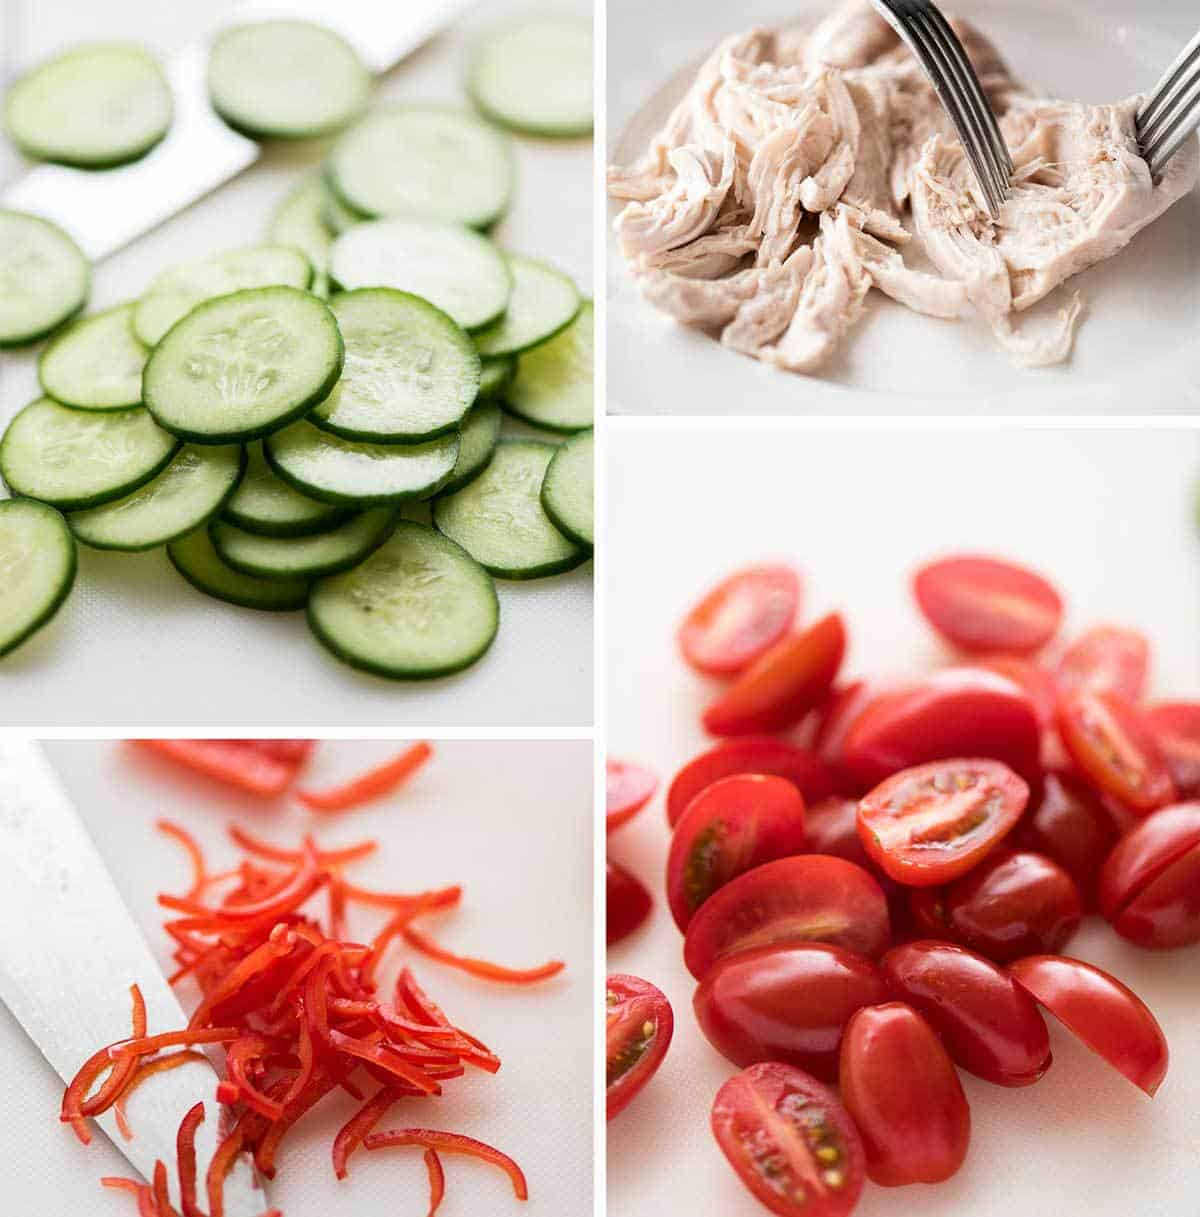 Thai Chicken Salad ingredients